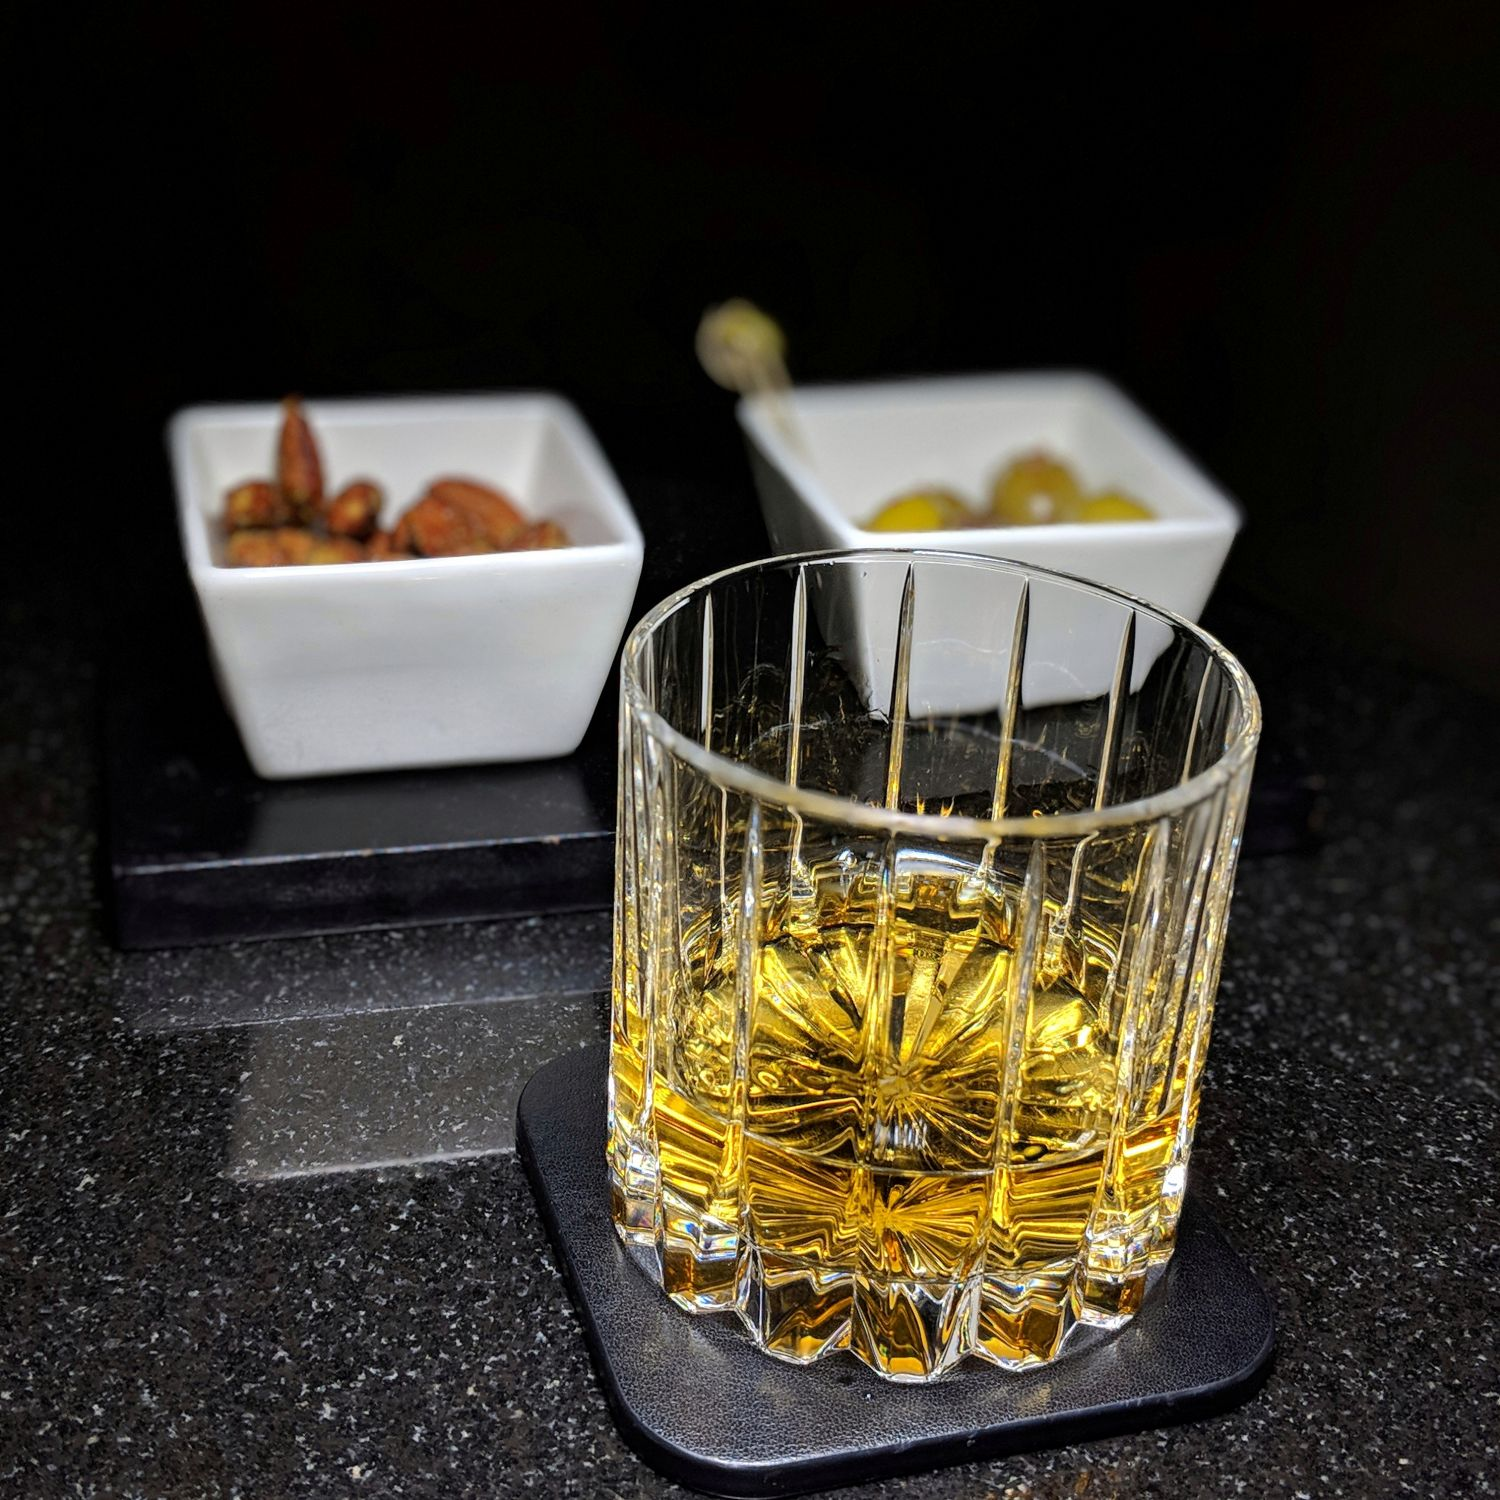 Four Seasons Hotel Singapore One-Ninety Bar Spirits